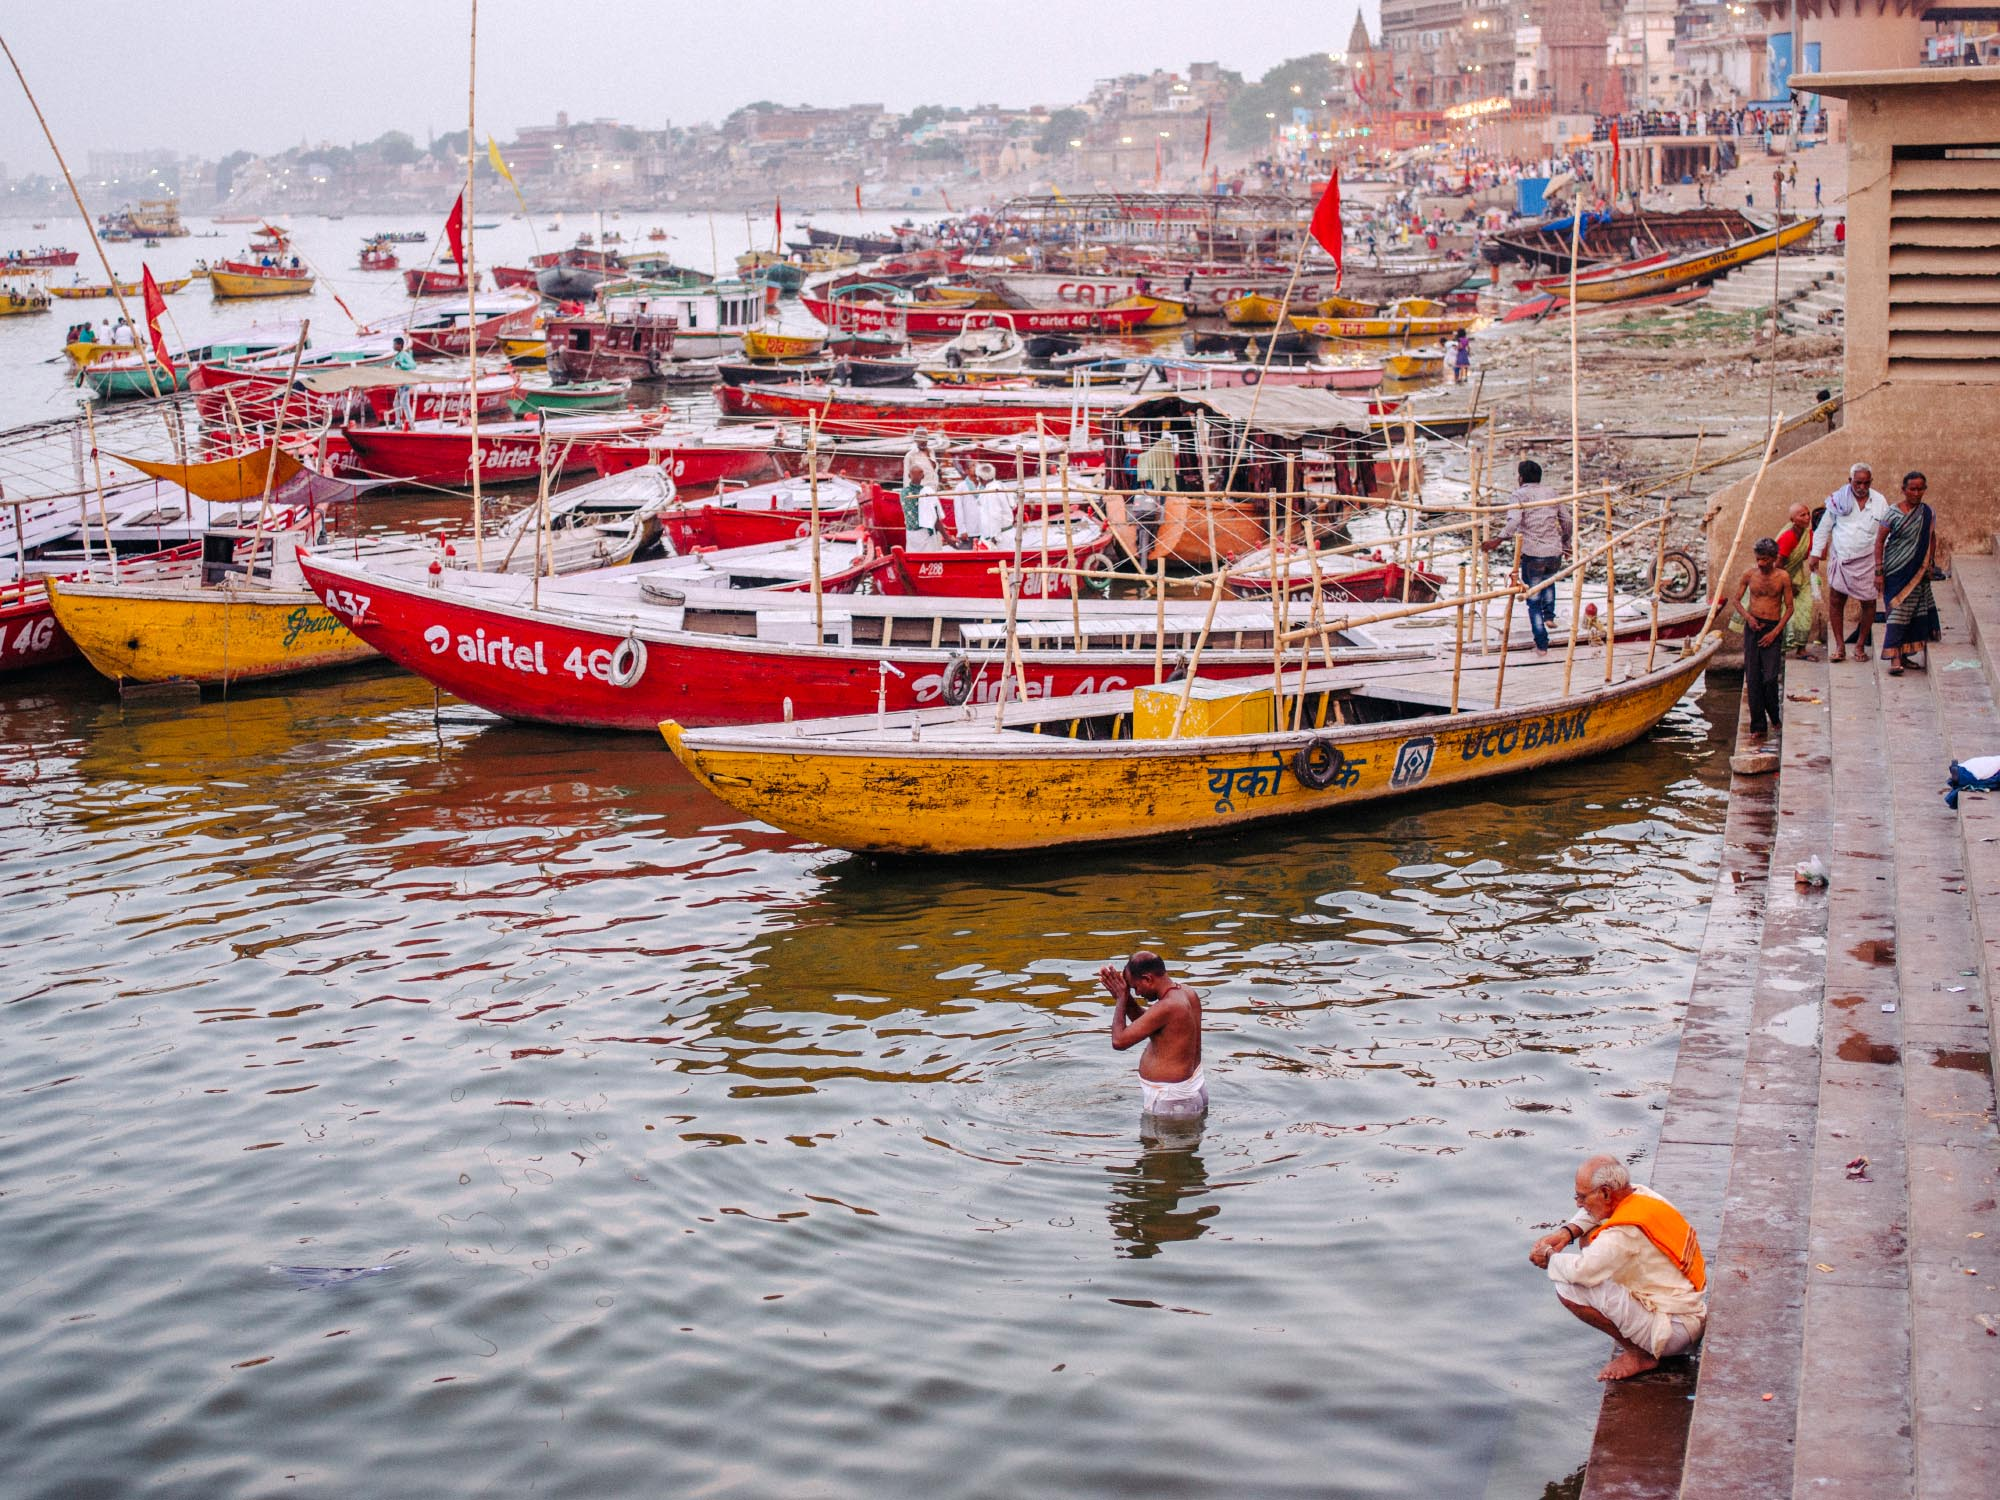 joris-hermans-photography-varanasi-10.jpg